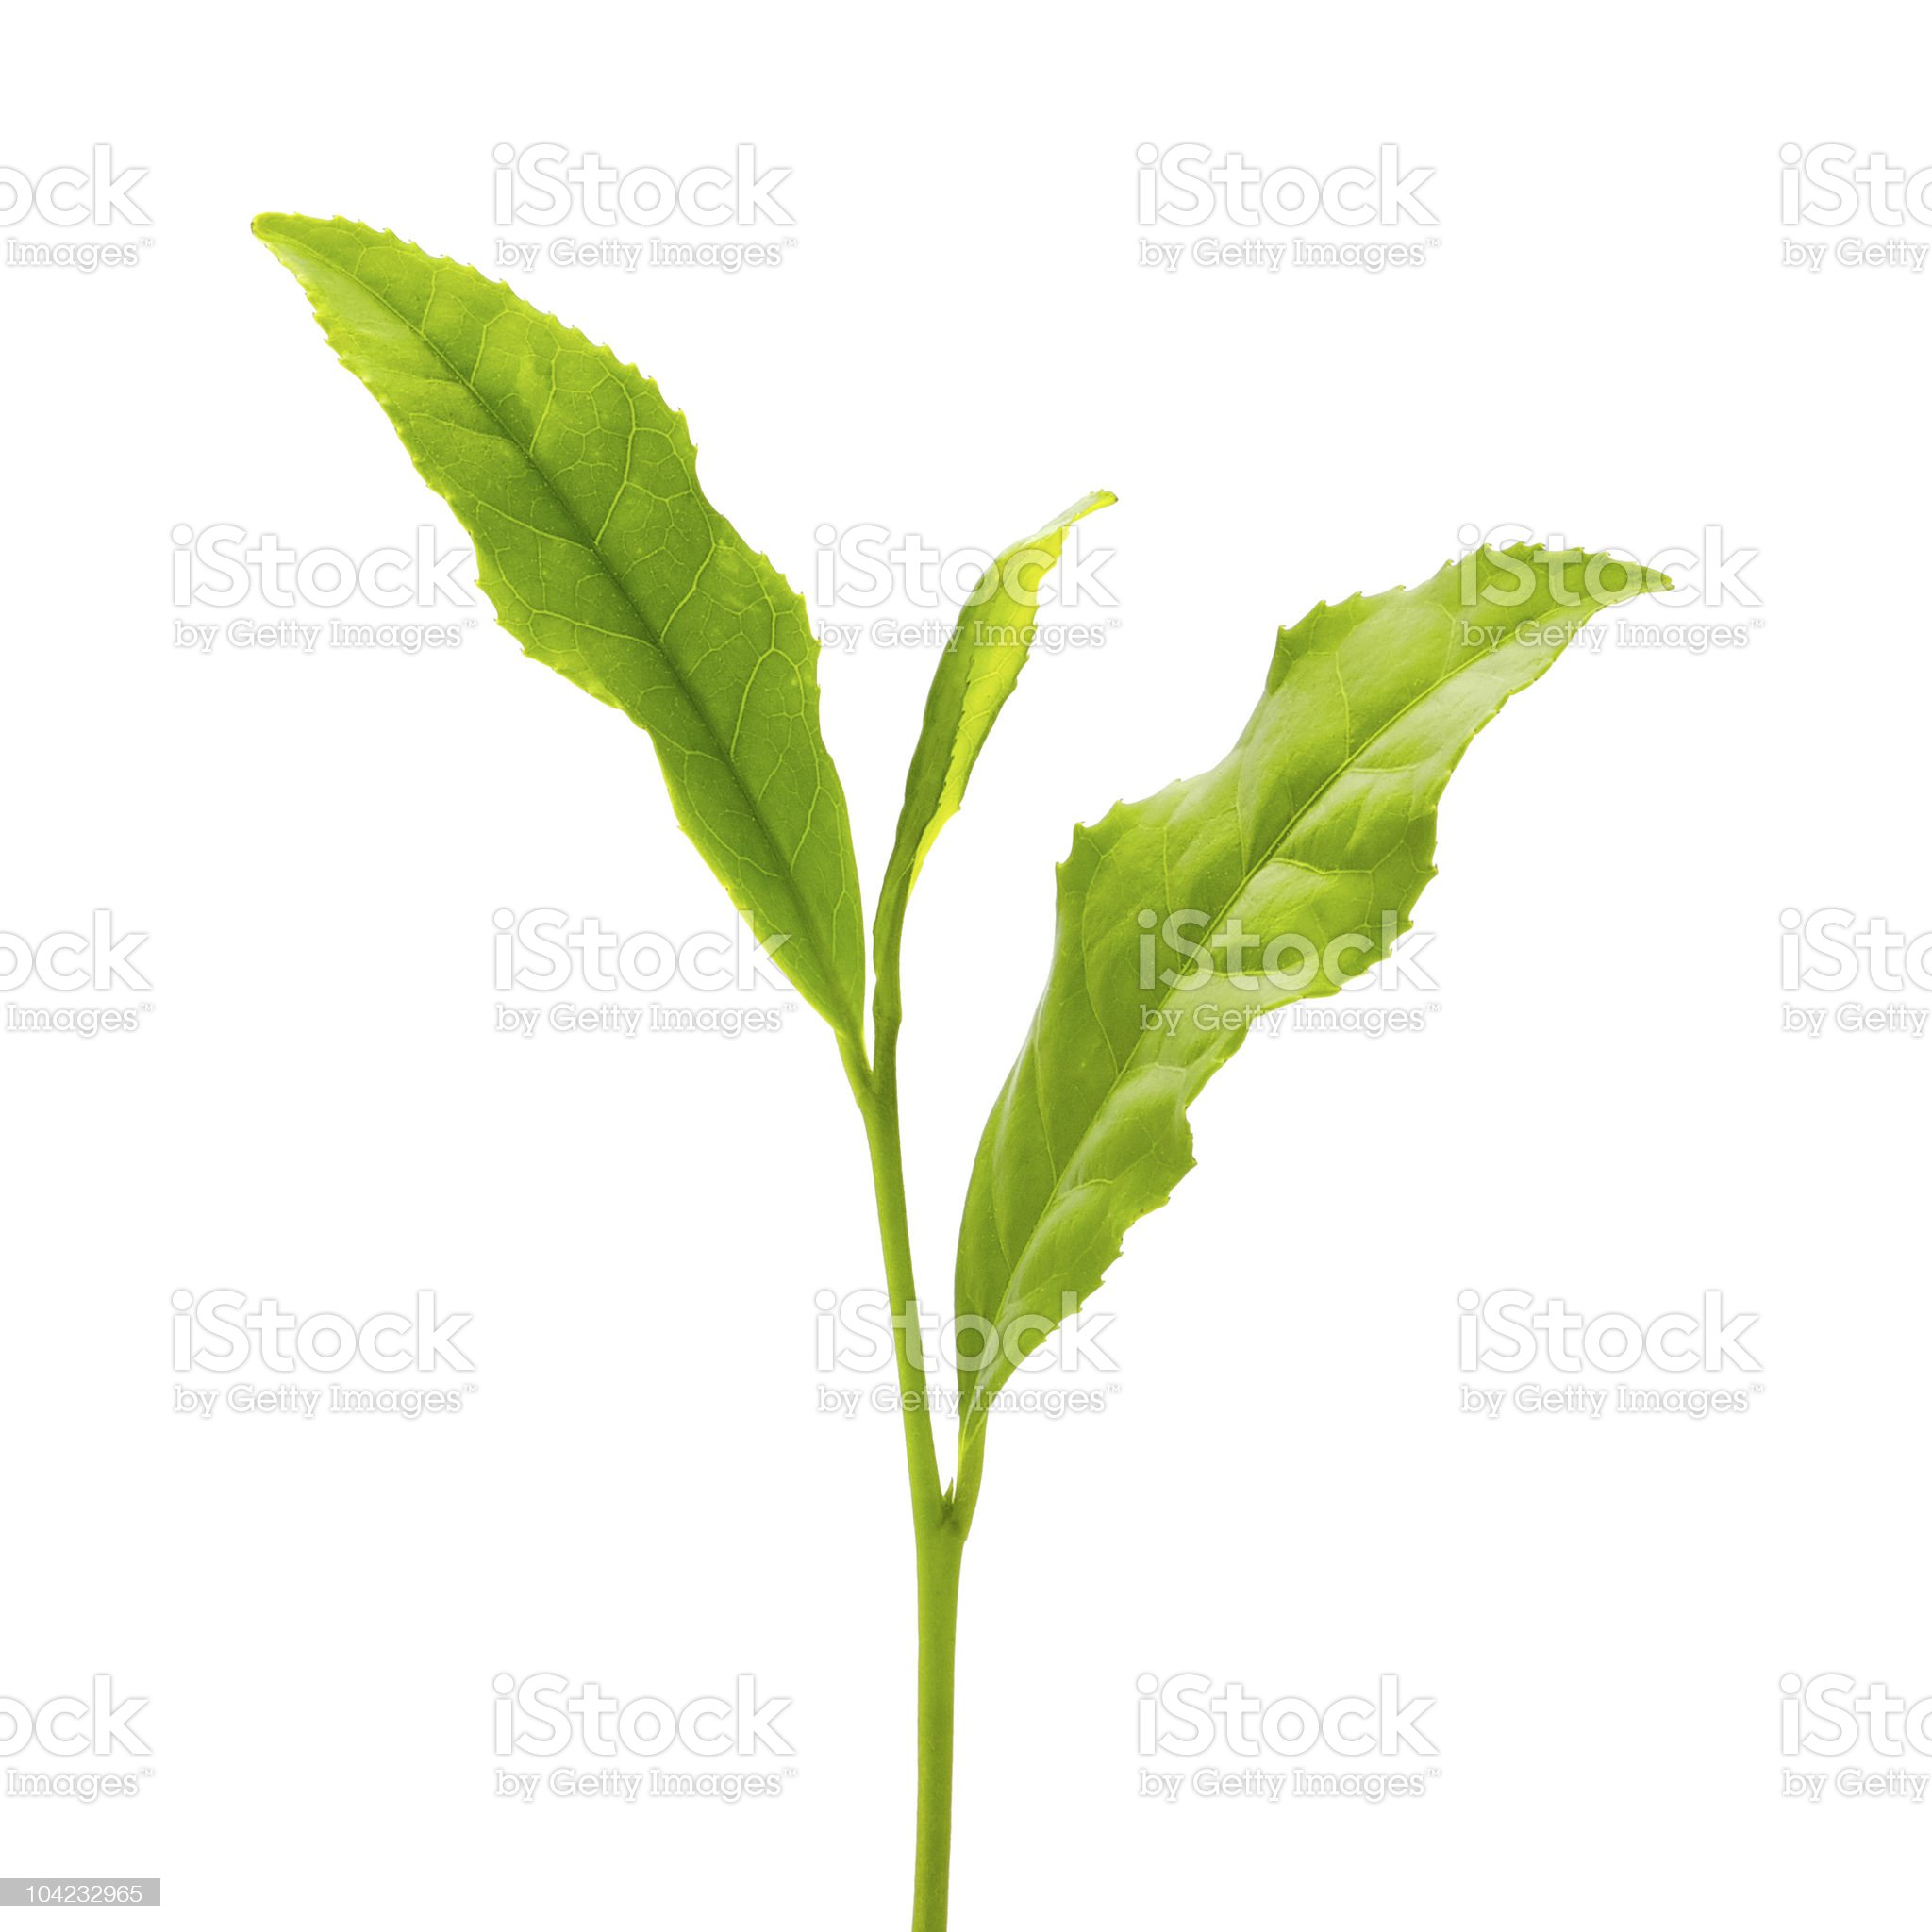 Green leaf isolated on white background royalty-free stock photo